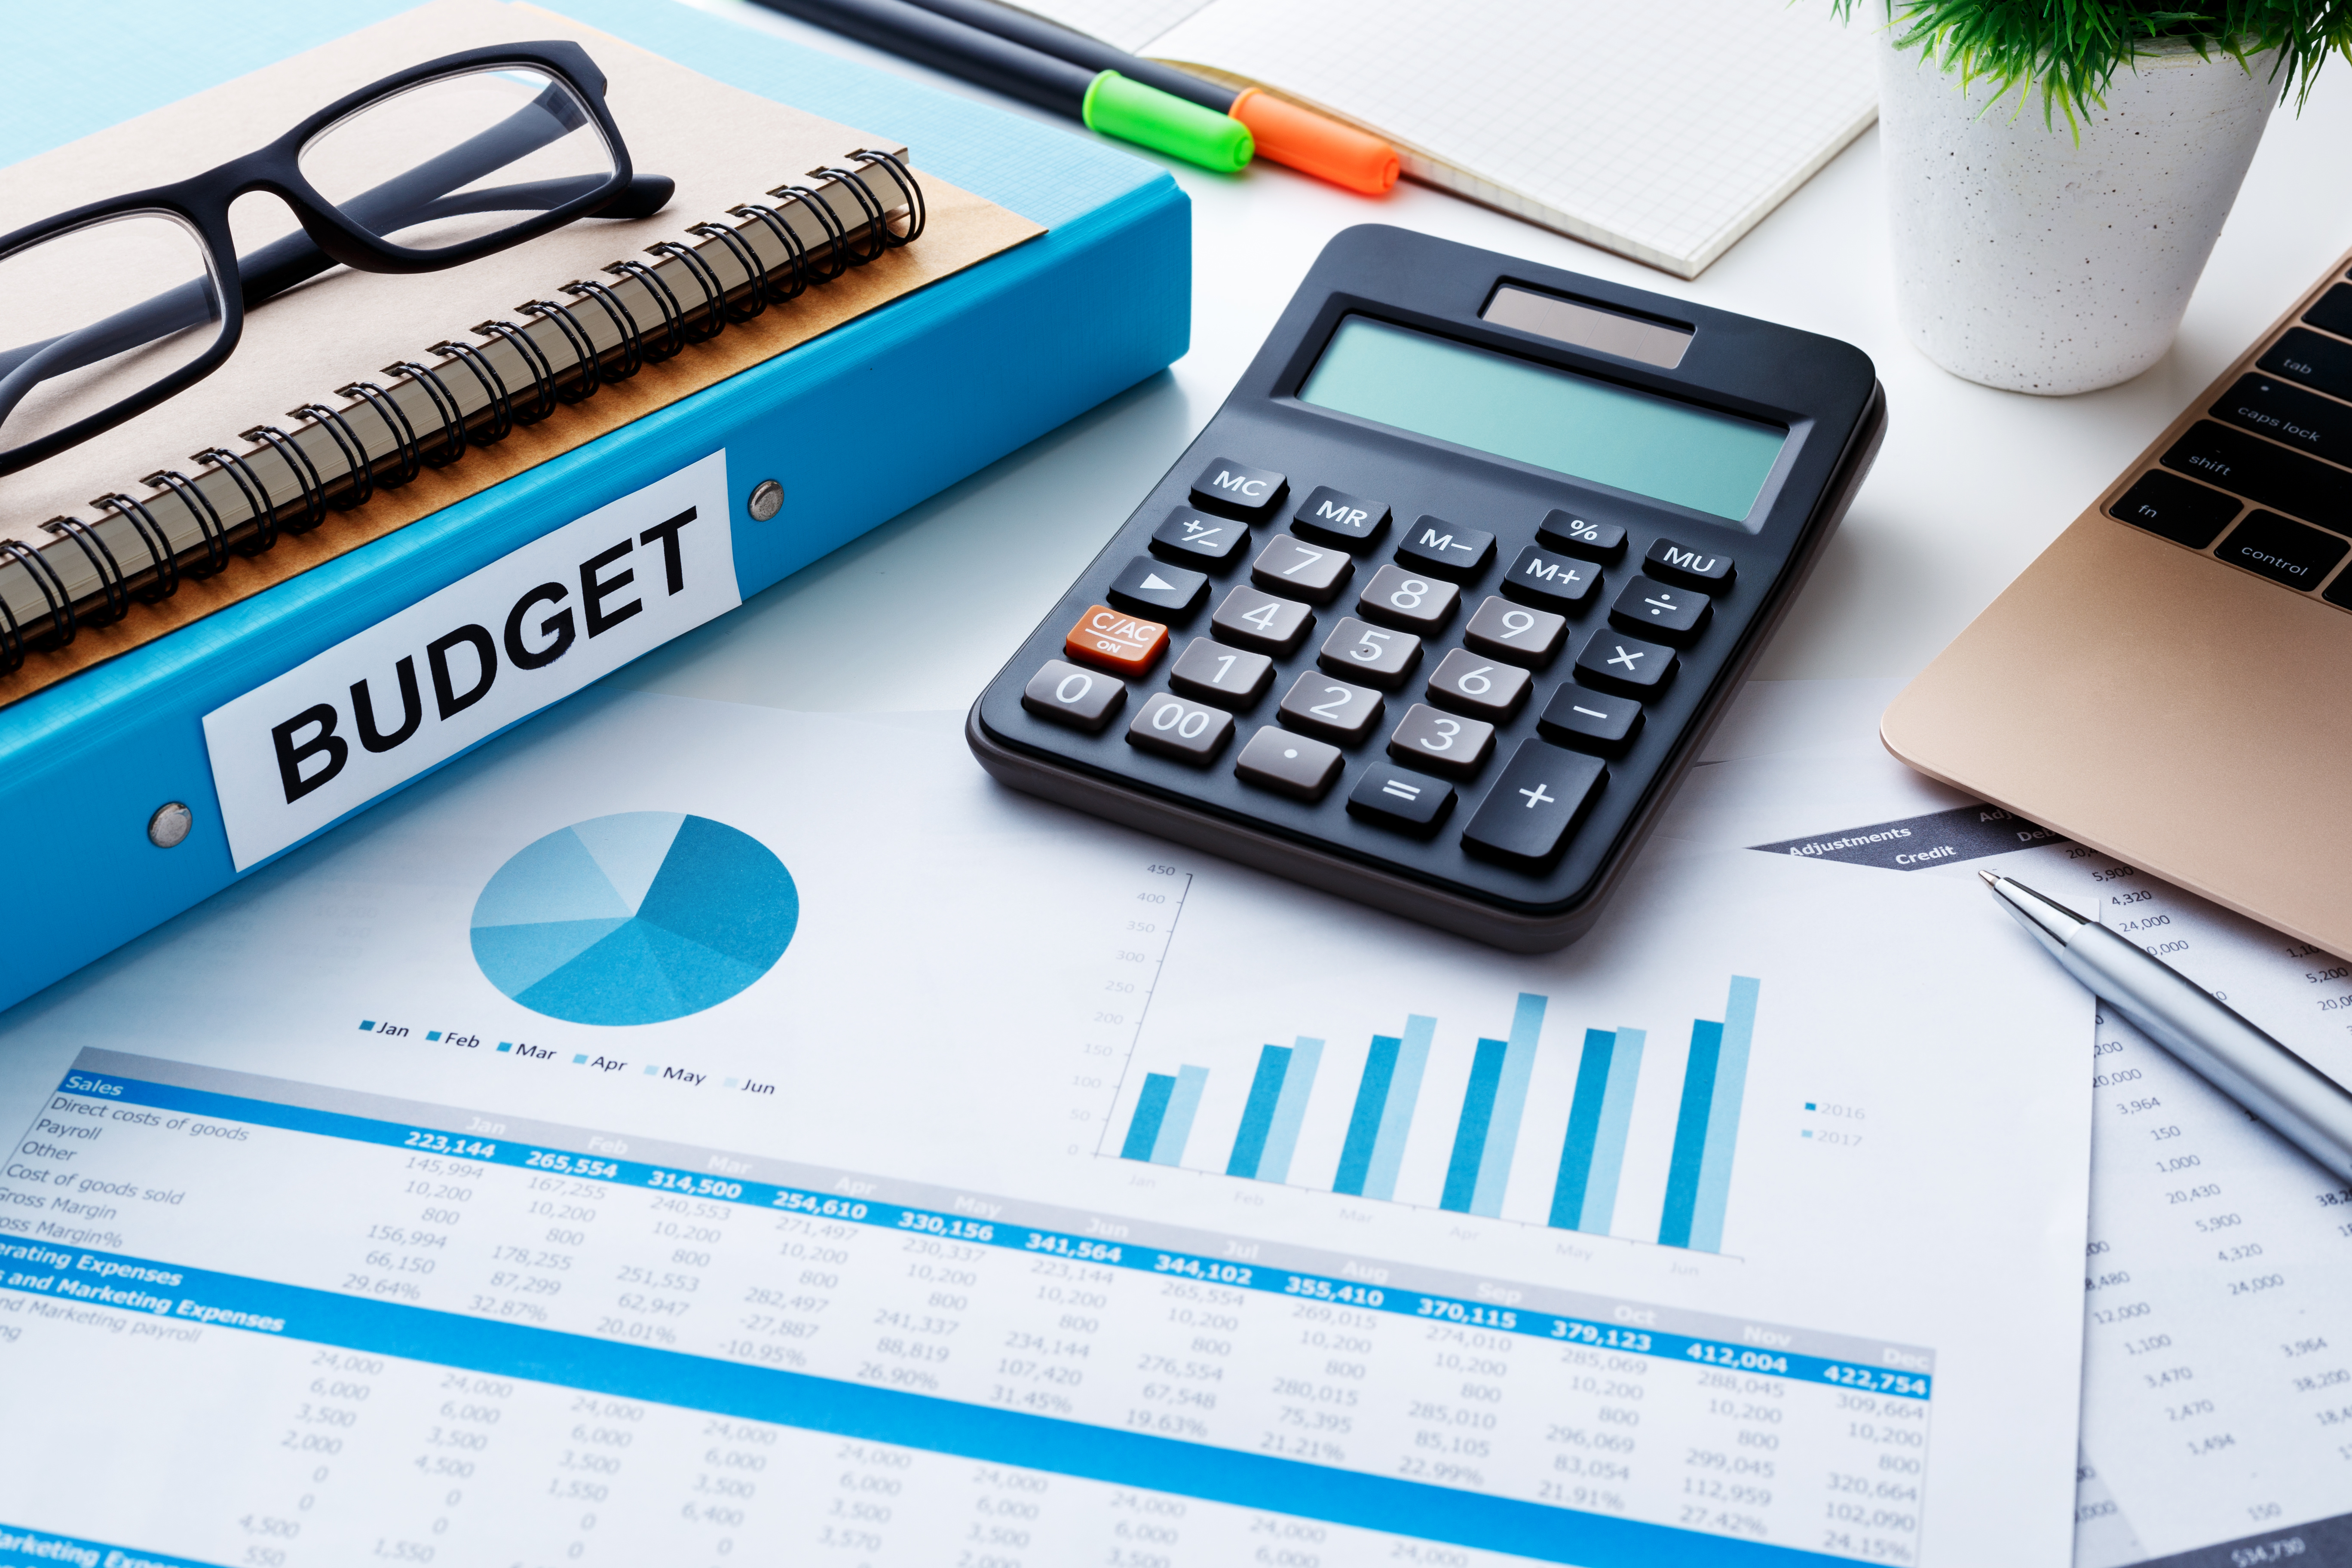 Need to Keep Track of your Project Budget? Use Budget Resources